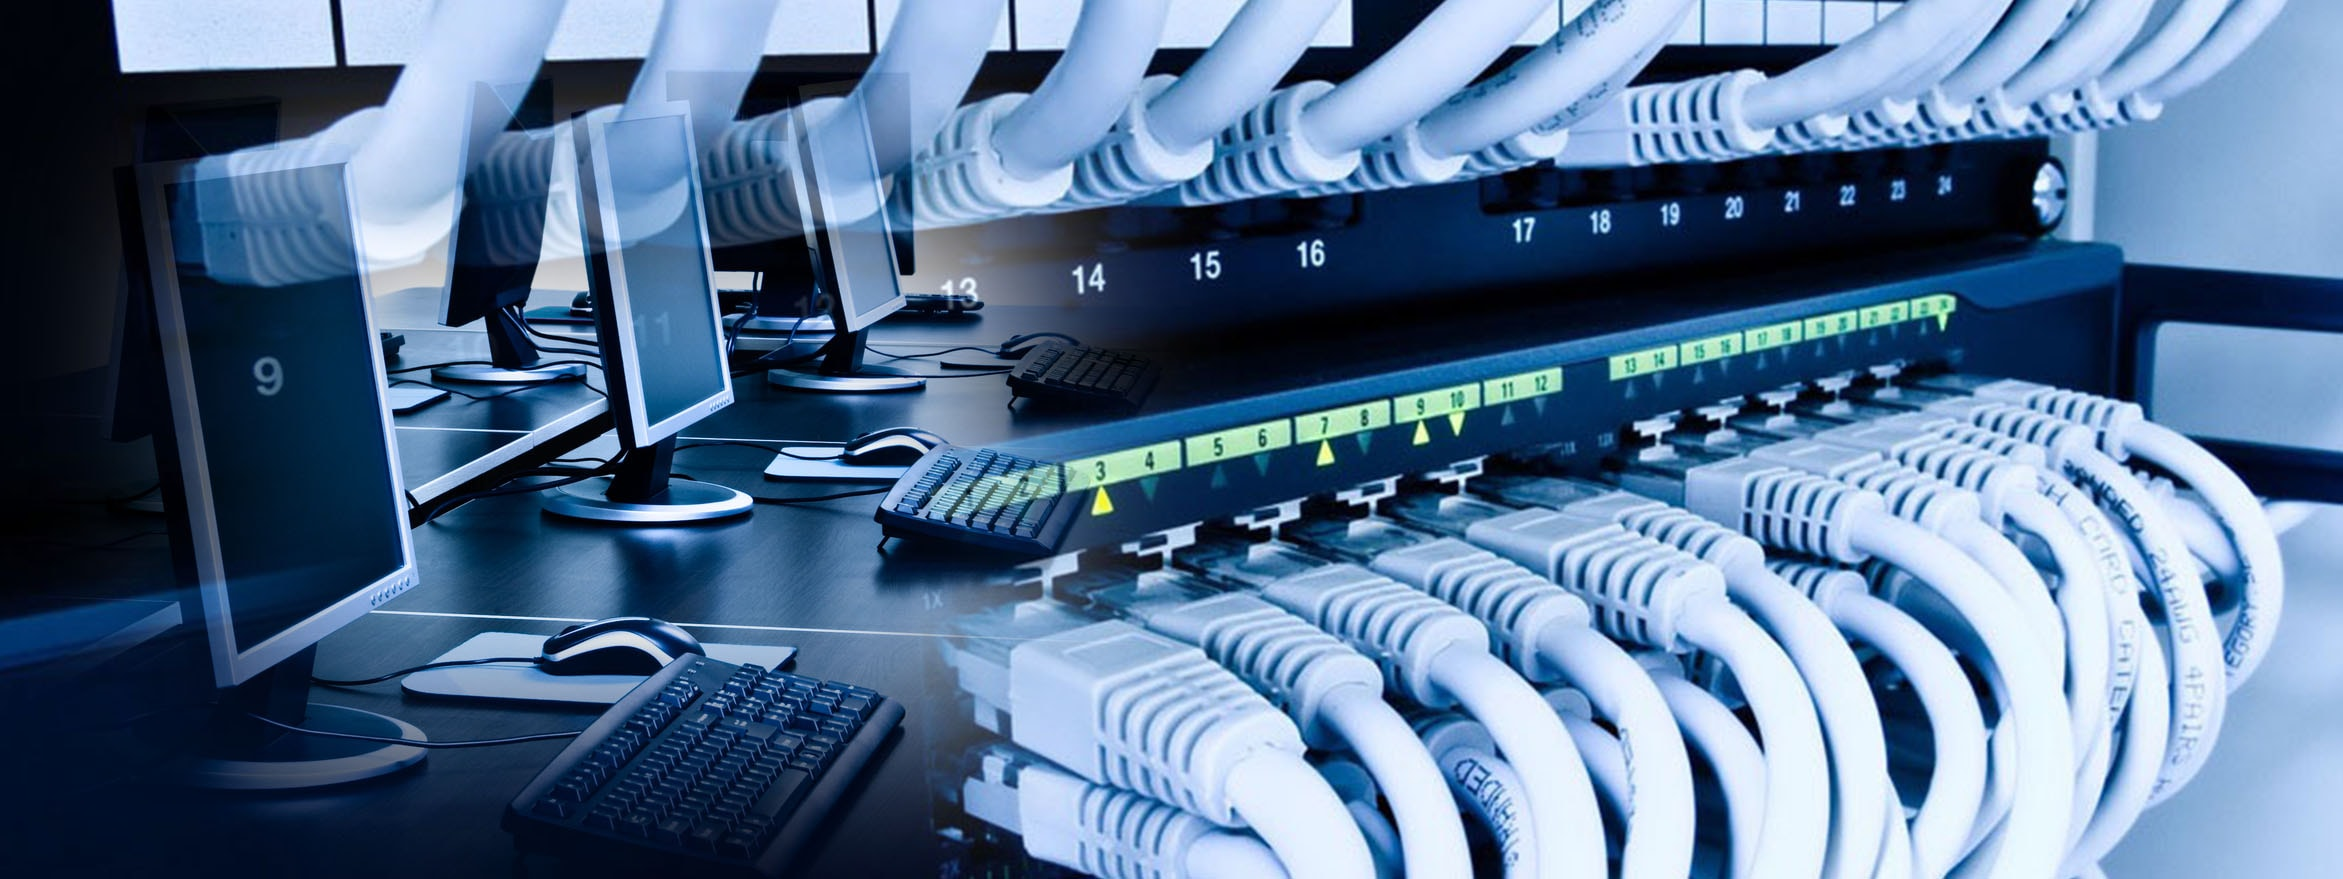 Network And Servers Whole House Structured Wiring Networking Setups Cabinets Panels